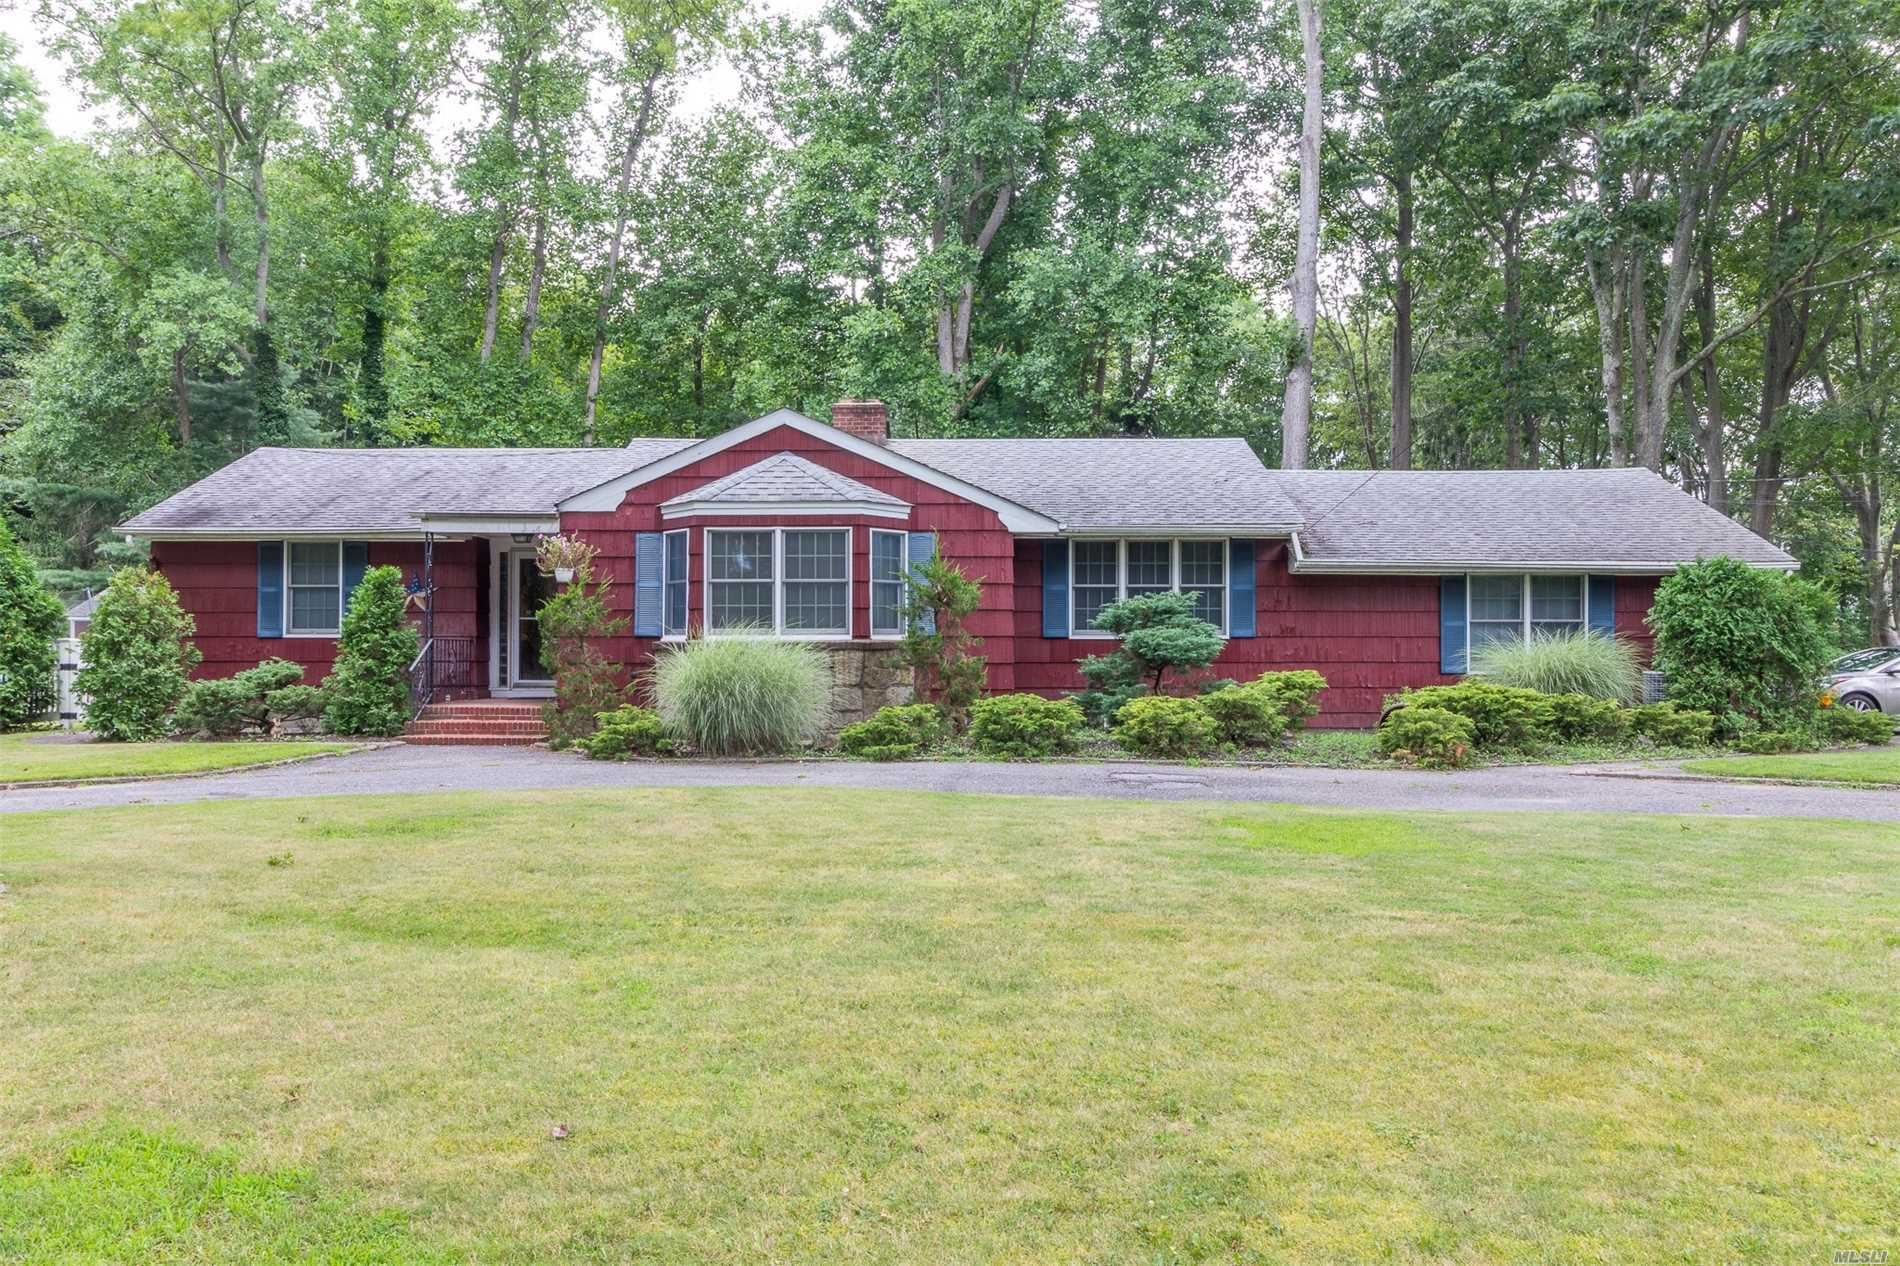 140 Durkee Lane, E. Patchogue, NY 11772 - MLS#: 3075242